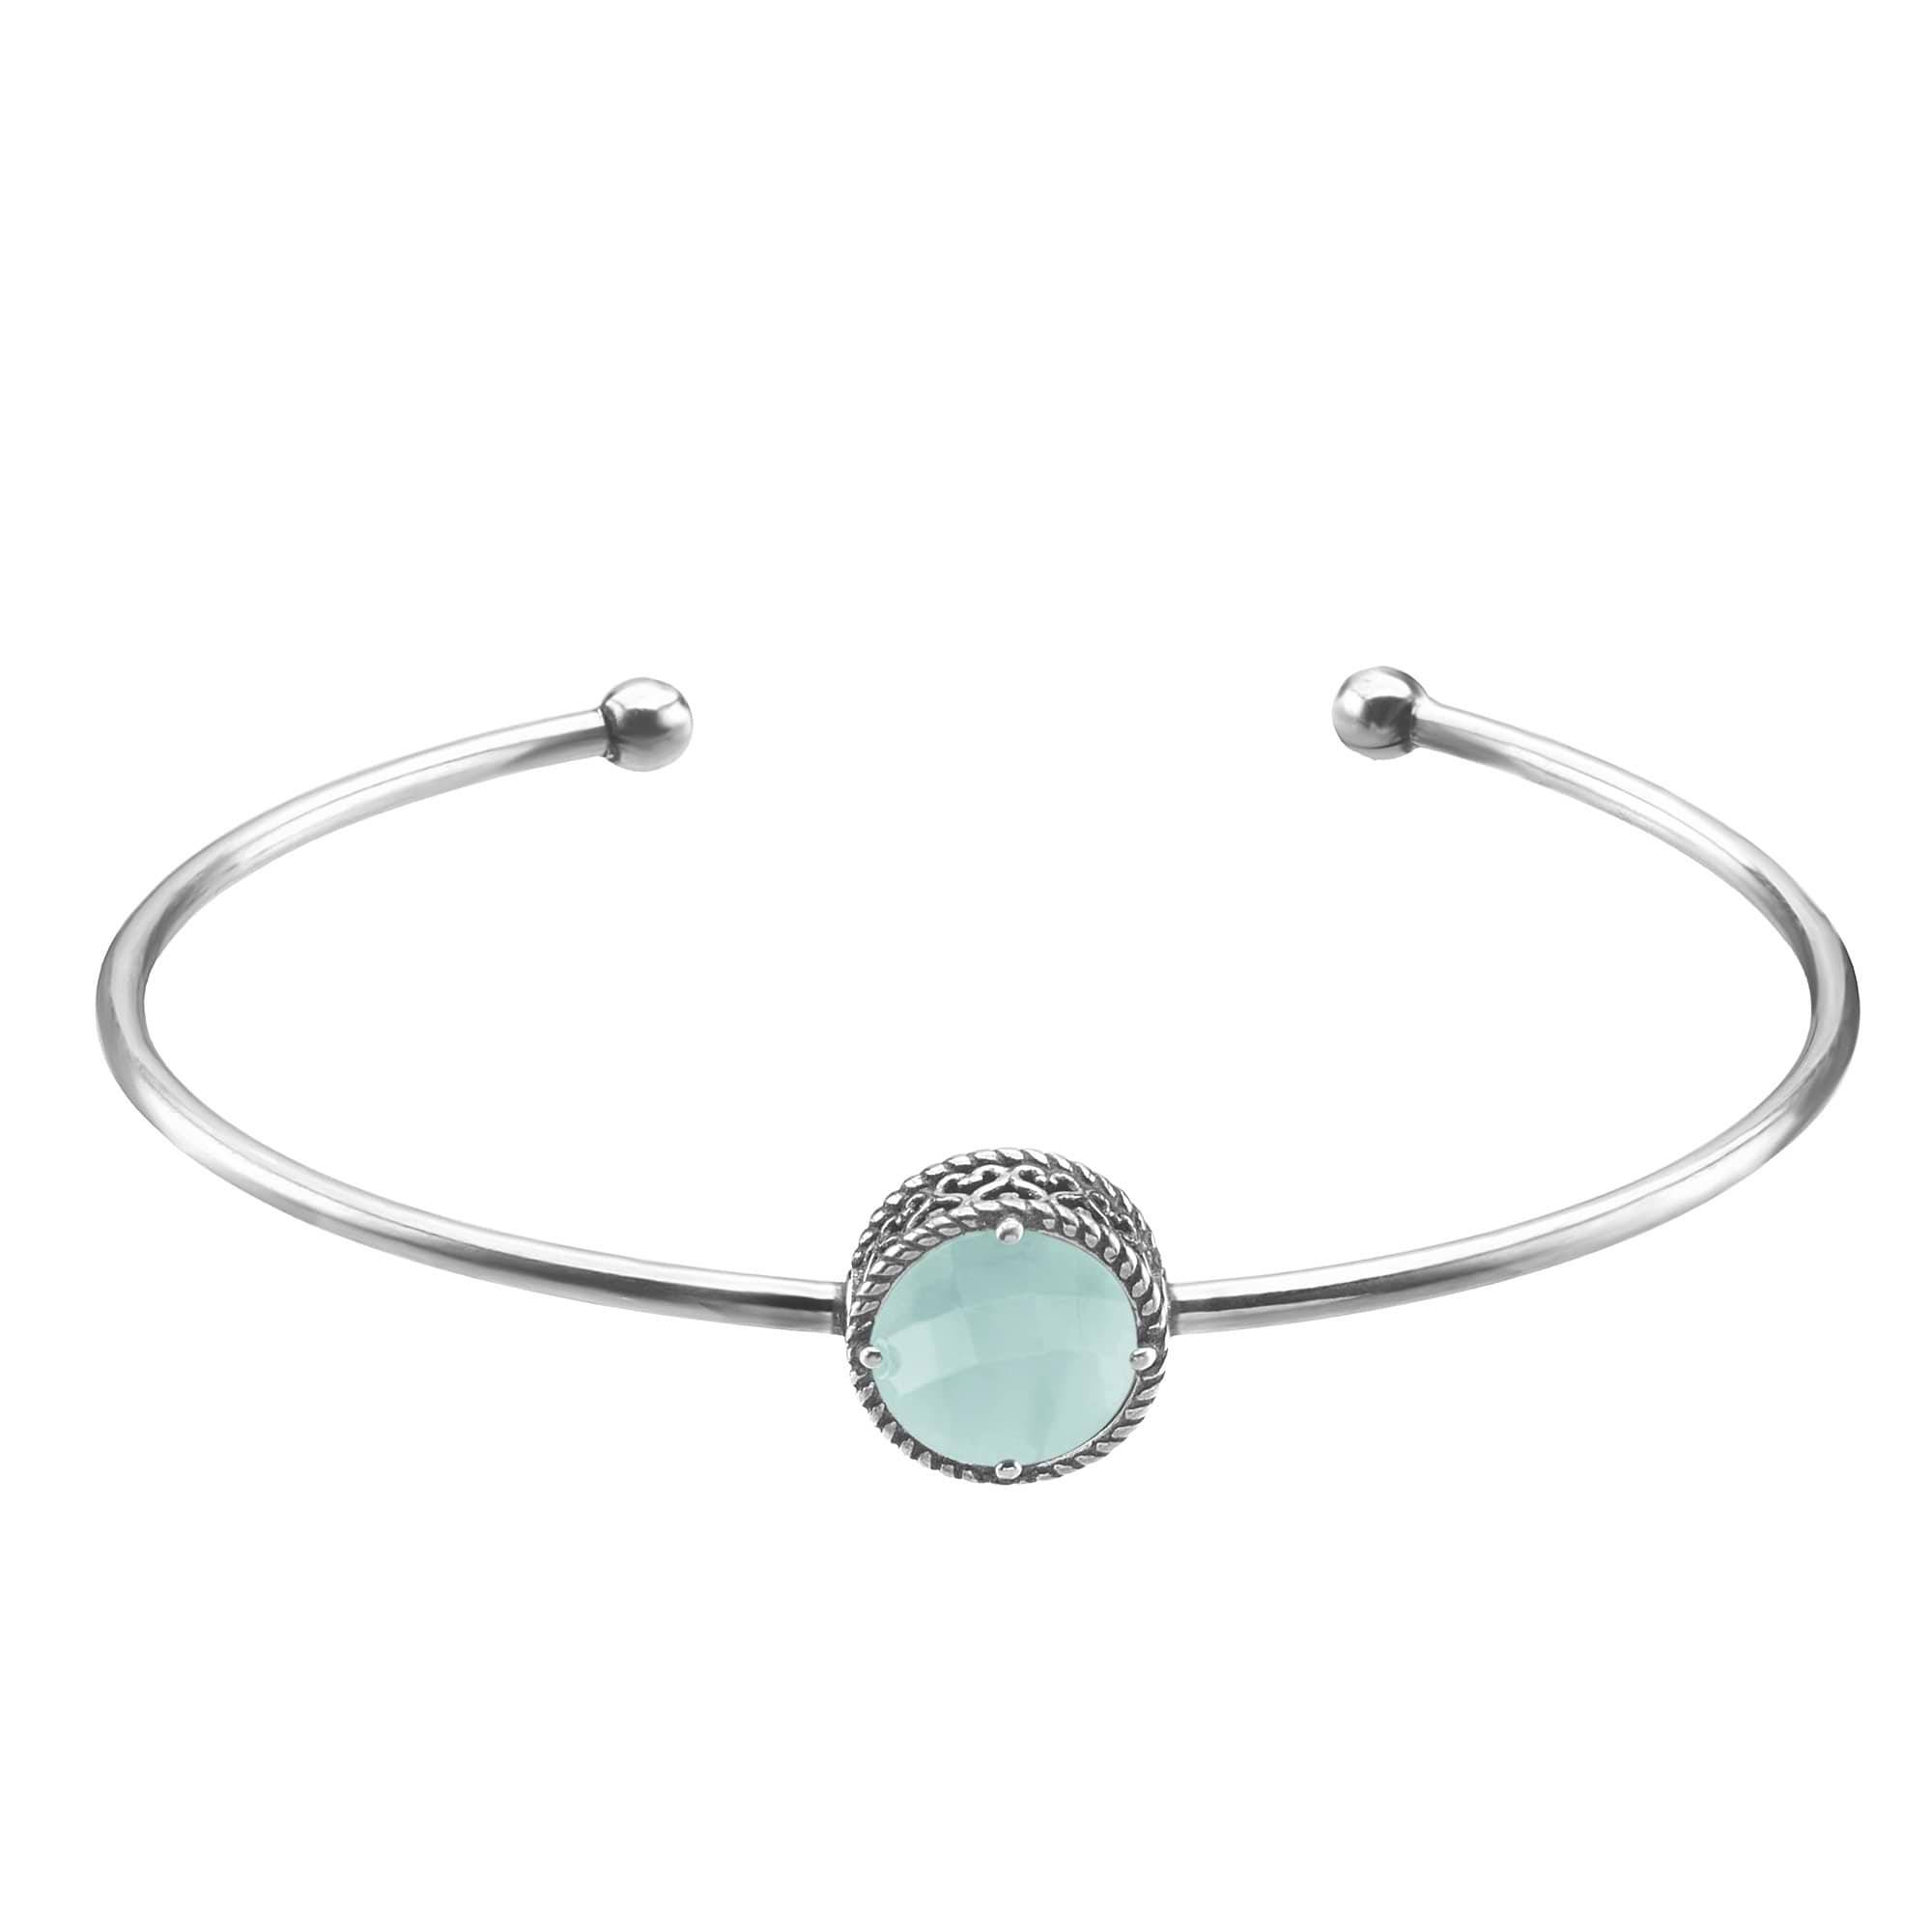 Stroili Bracciale bangle small in argento 925 rodiato e pietra colorata